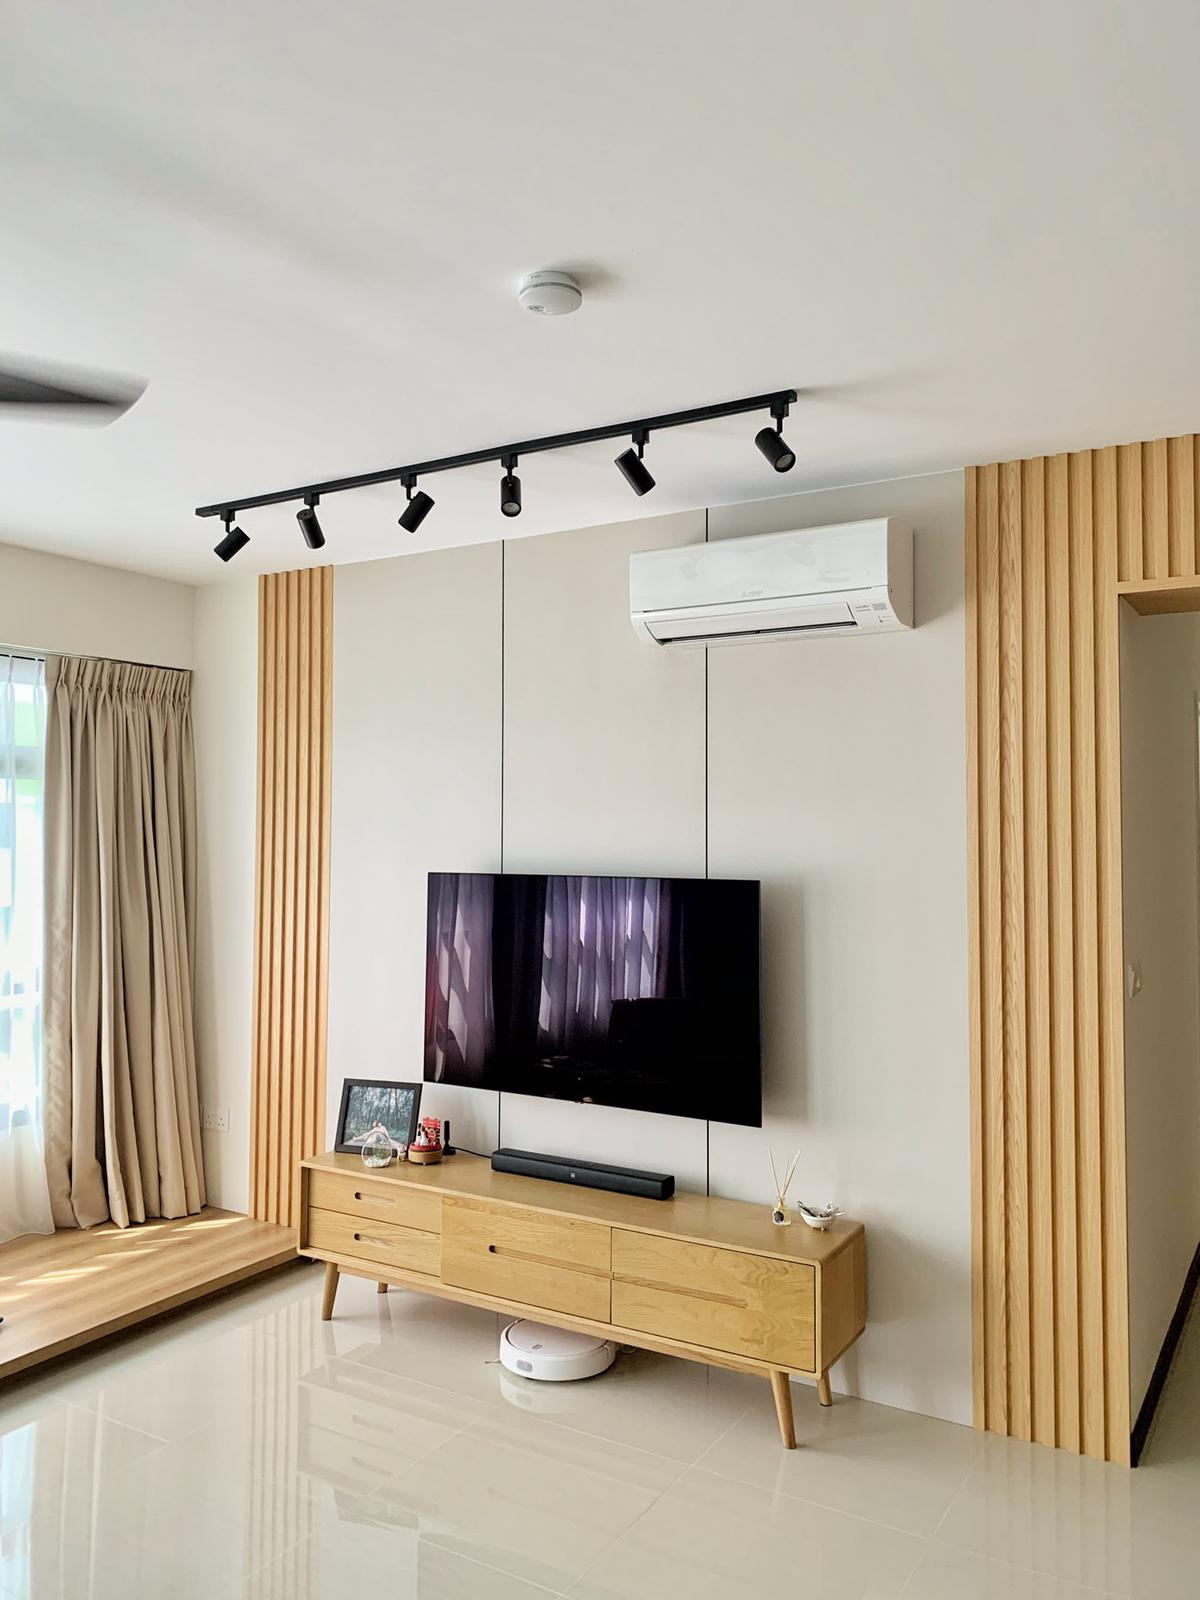 Tampines Greenweave-HDB-Design-5RoomBTO-Singapore/JCWDESIGNGALLERY